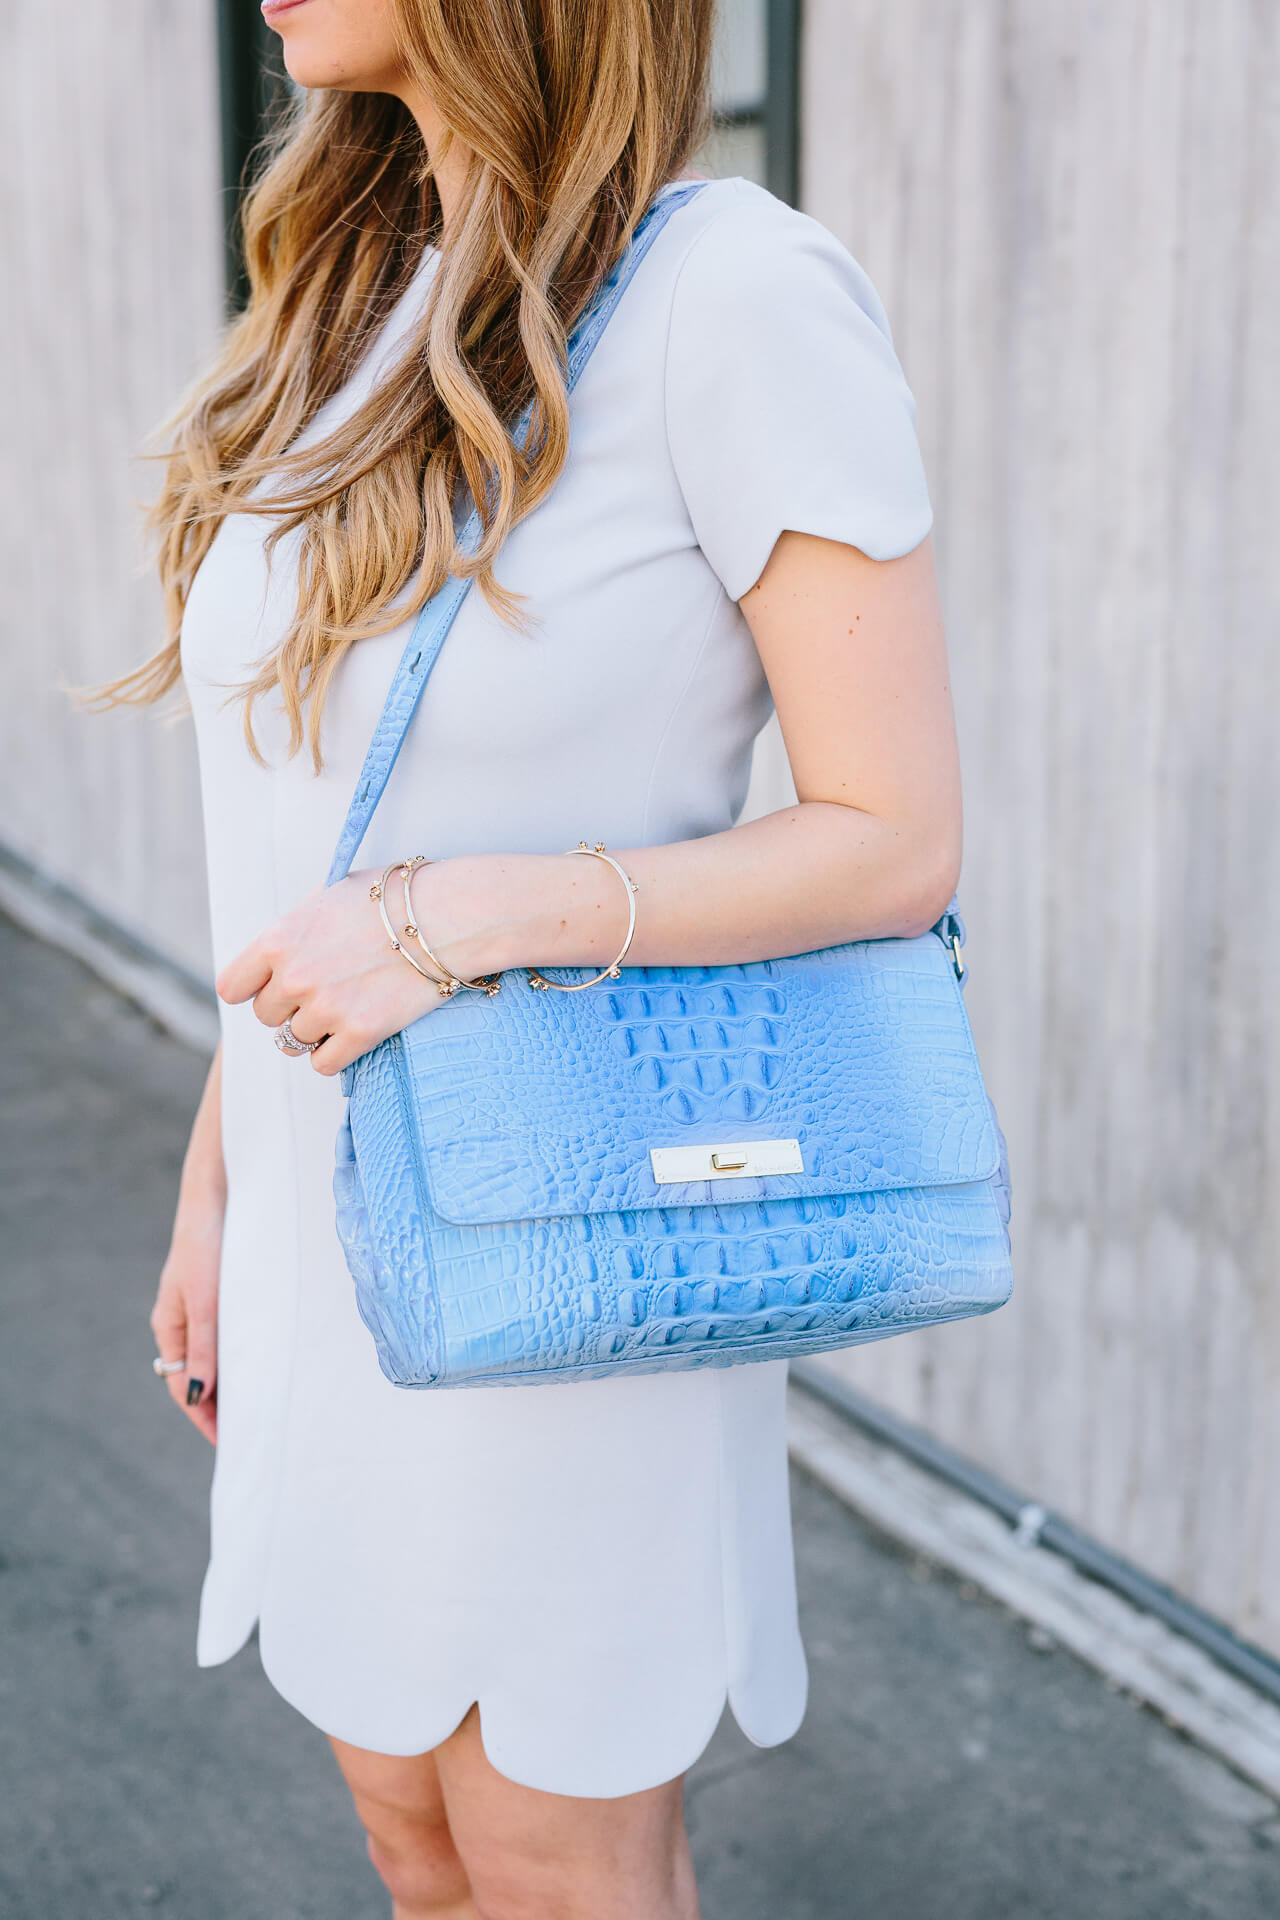 scalloped light blue dress with brahmin bag